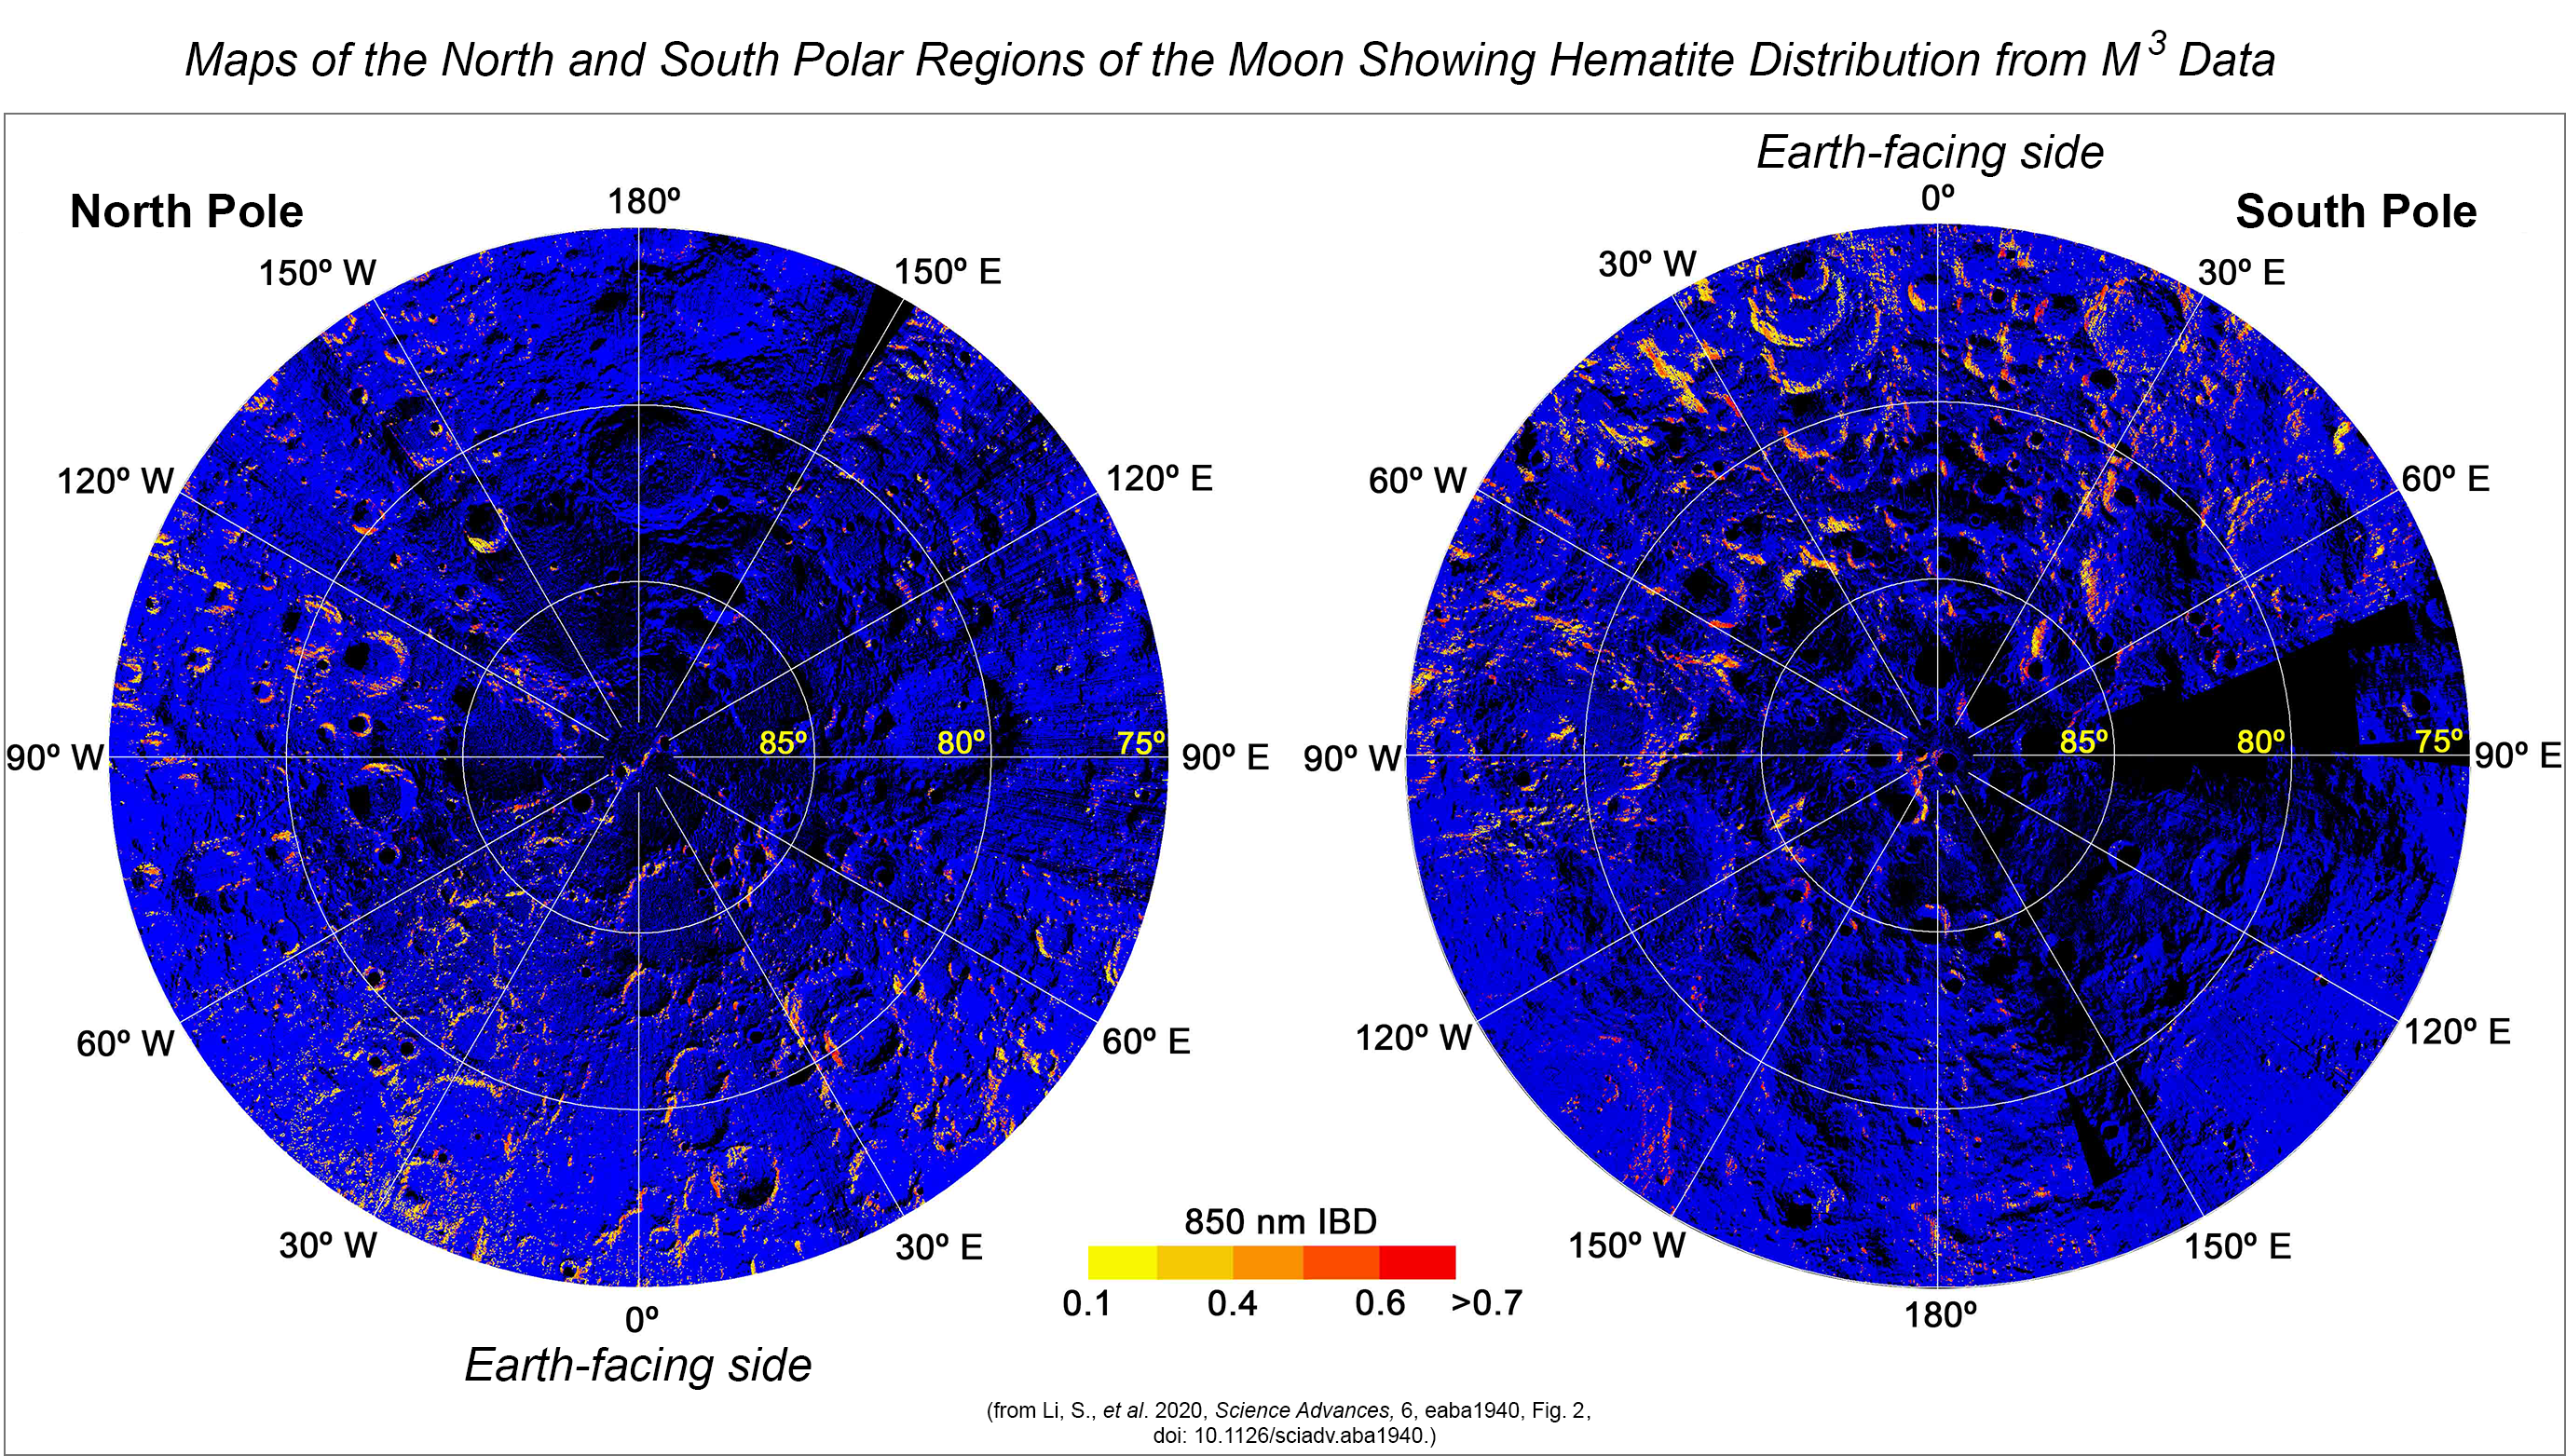 Maps of the North and South polar regions of the Moon showing hematite distribution with IBD values determined by Li and colleagues from M3 data.